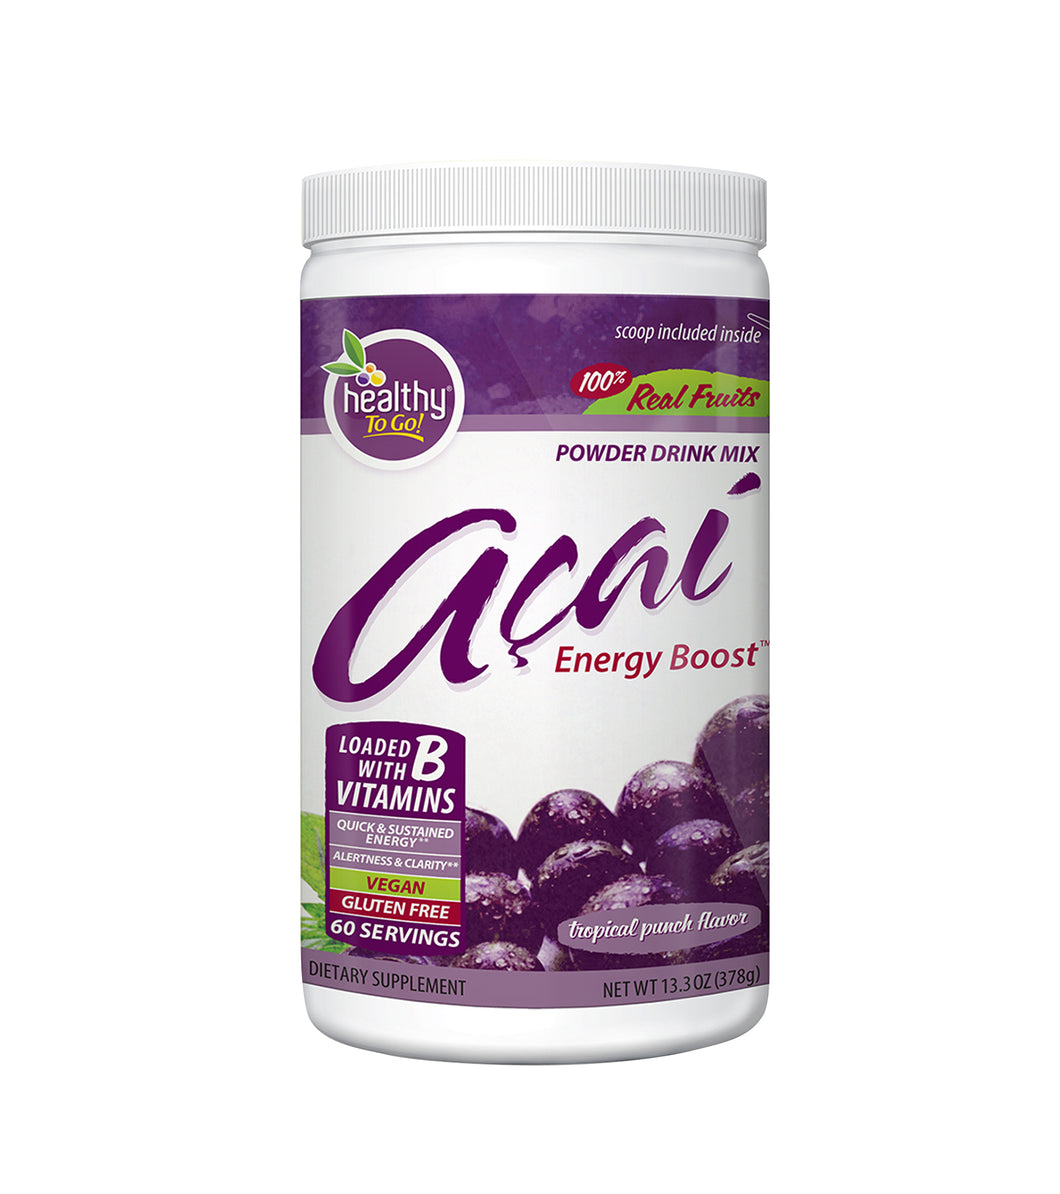 Acai Energy Boost 60 Serving Canister